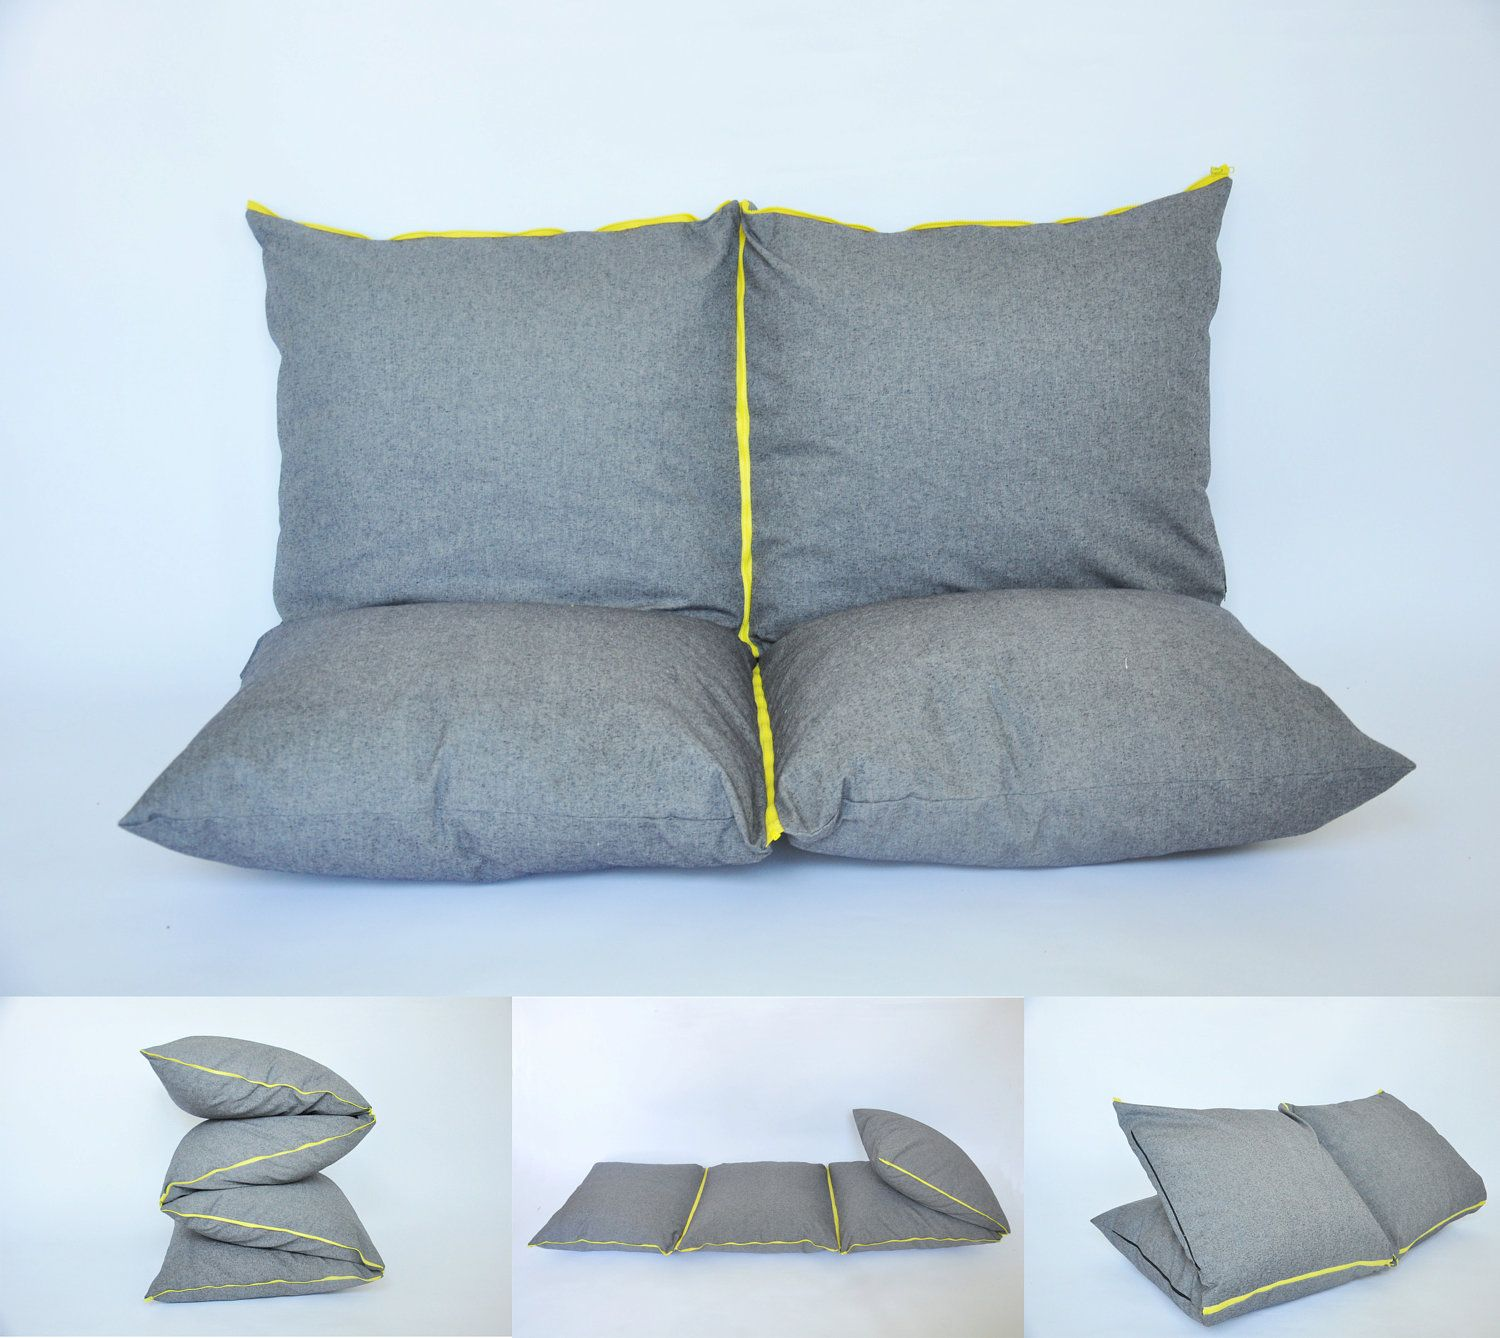 Great Floor Pillow Concept Especially For Kids For The